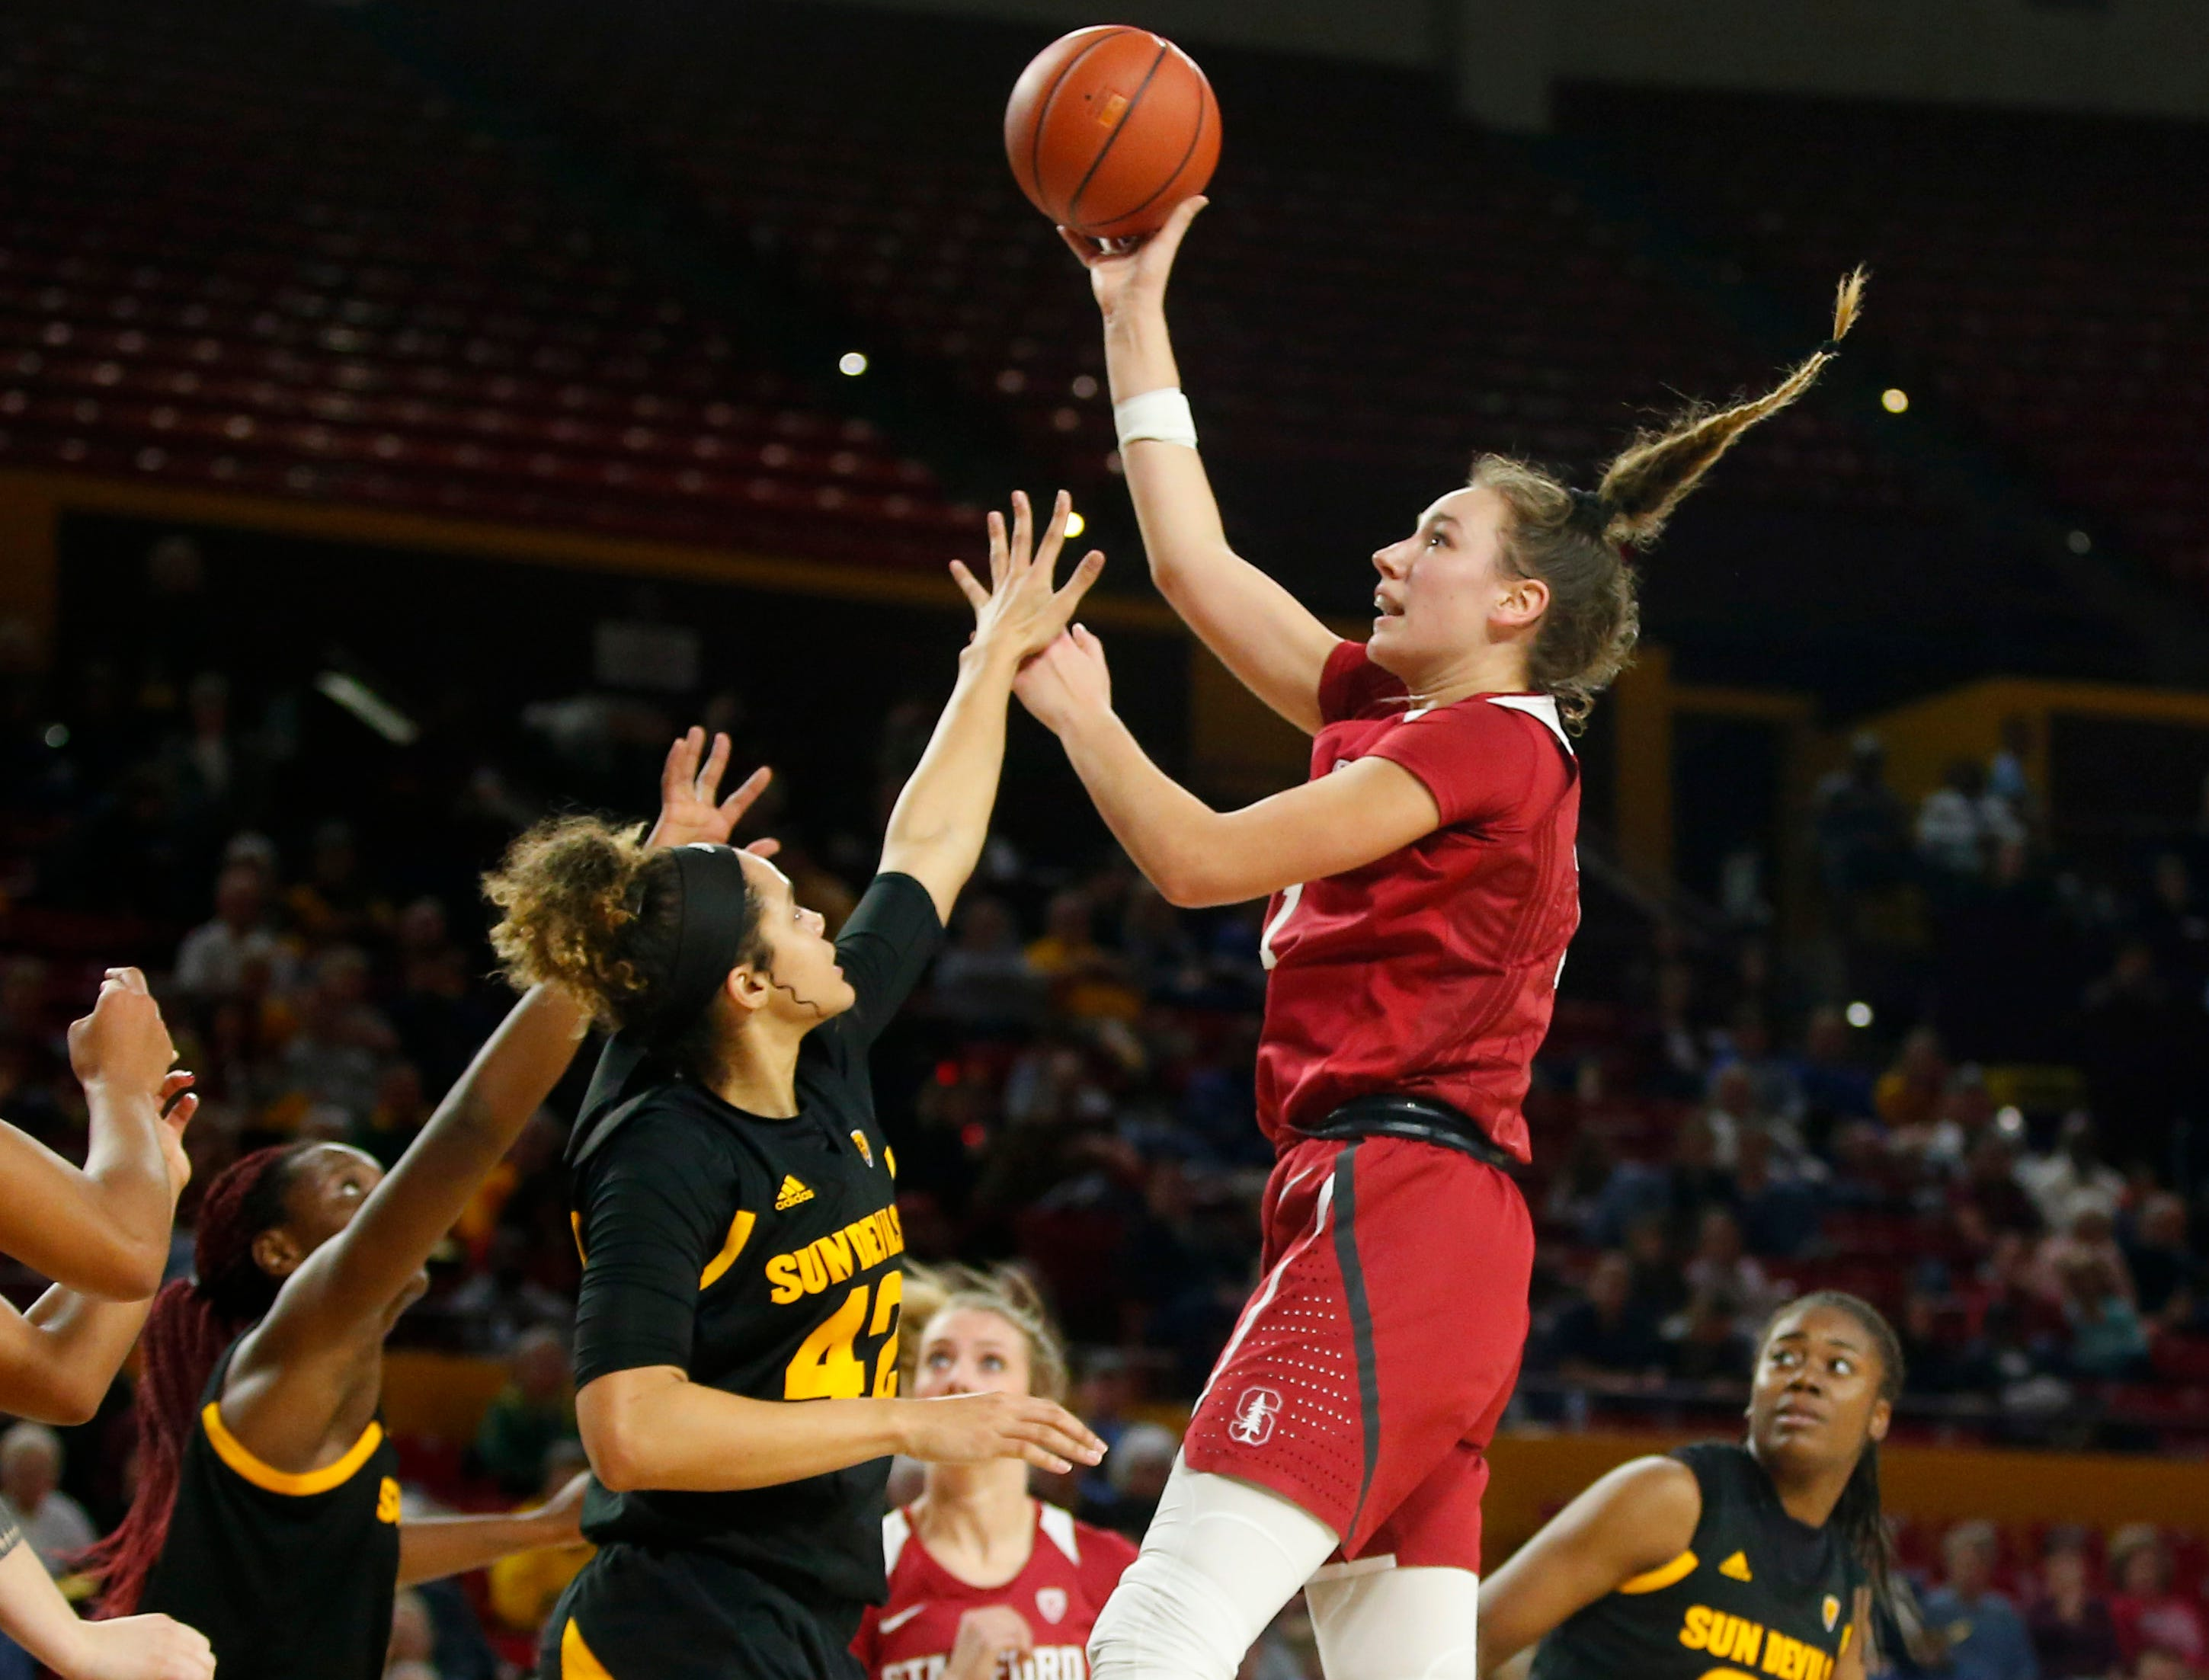 Stanford University Alanna Smith (11) takes a shot while being guarded by Arizona State University Kianna Ibis (42) during a women's basketball game at Well Fargo Arena in Tempe on January 11.